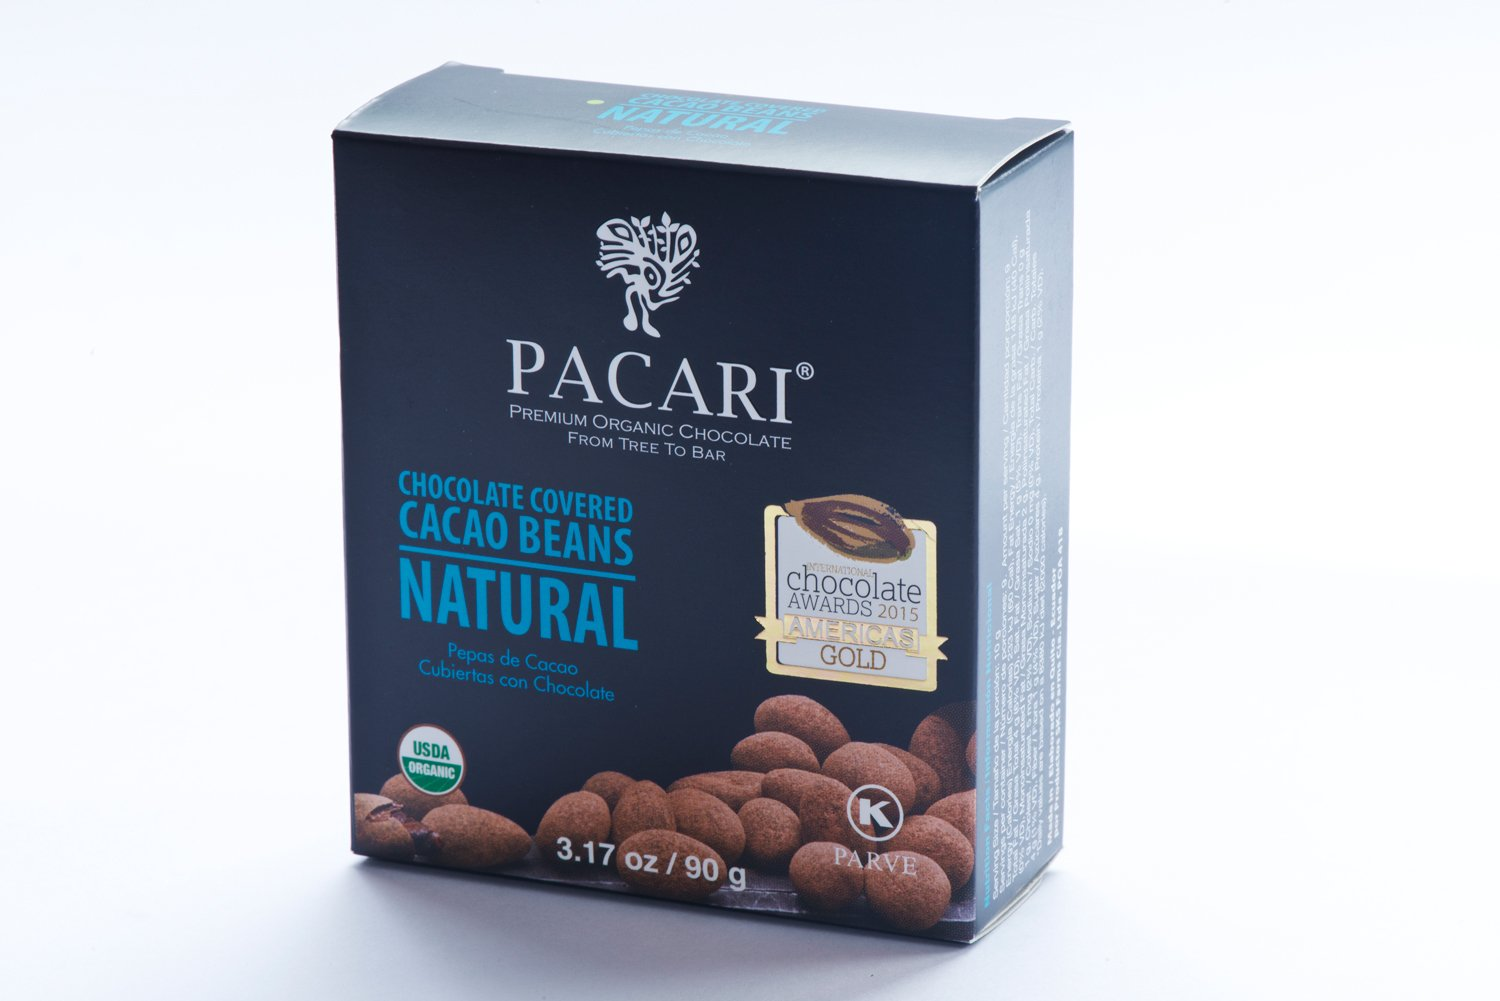 Amazon.com : Pacari Organic Cacao Cocoa Beans Natural : Candy And Chocolate Covered Nut Snacks : Grocery & Gourmet Food